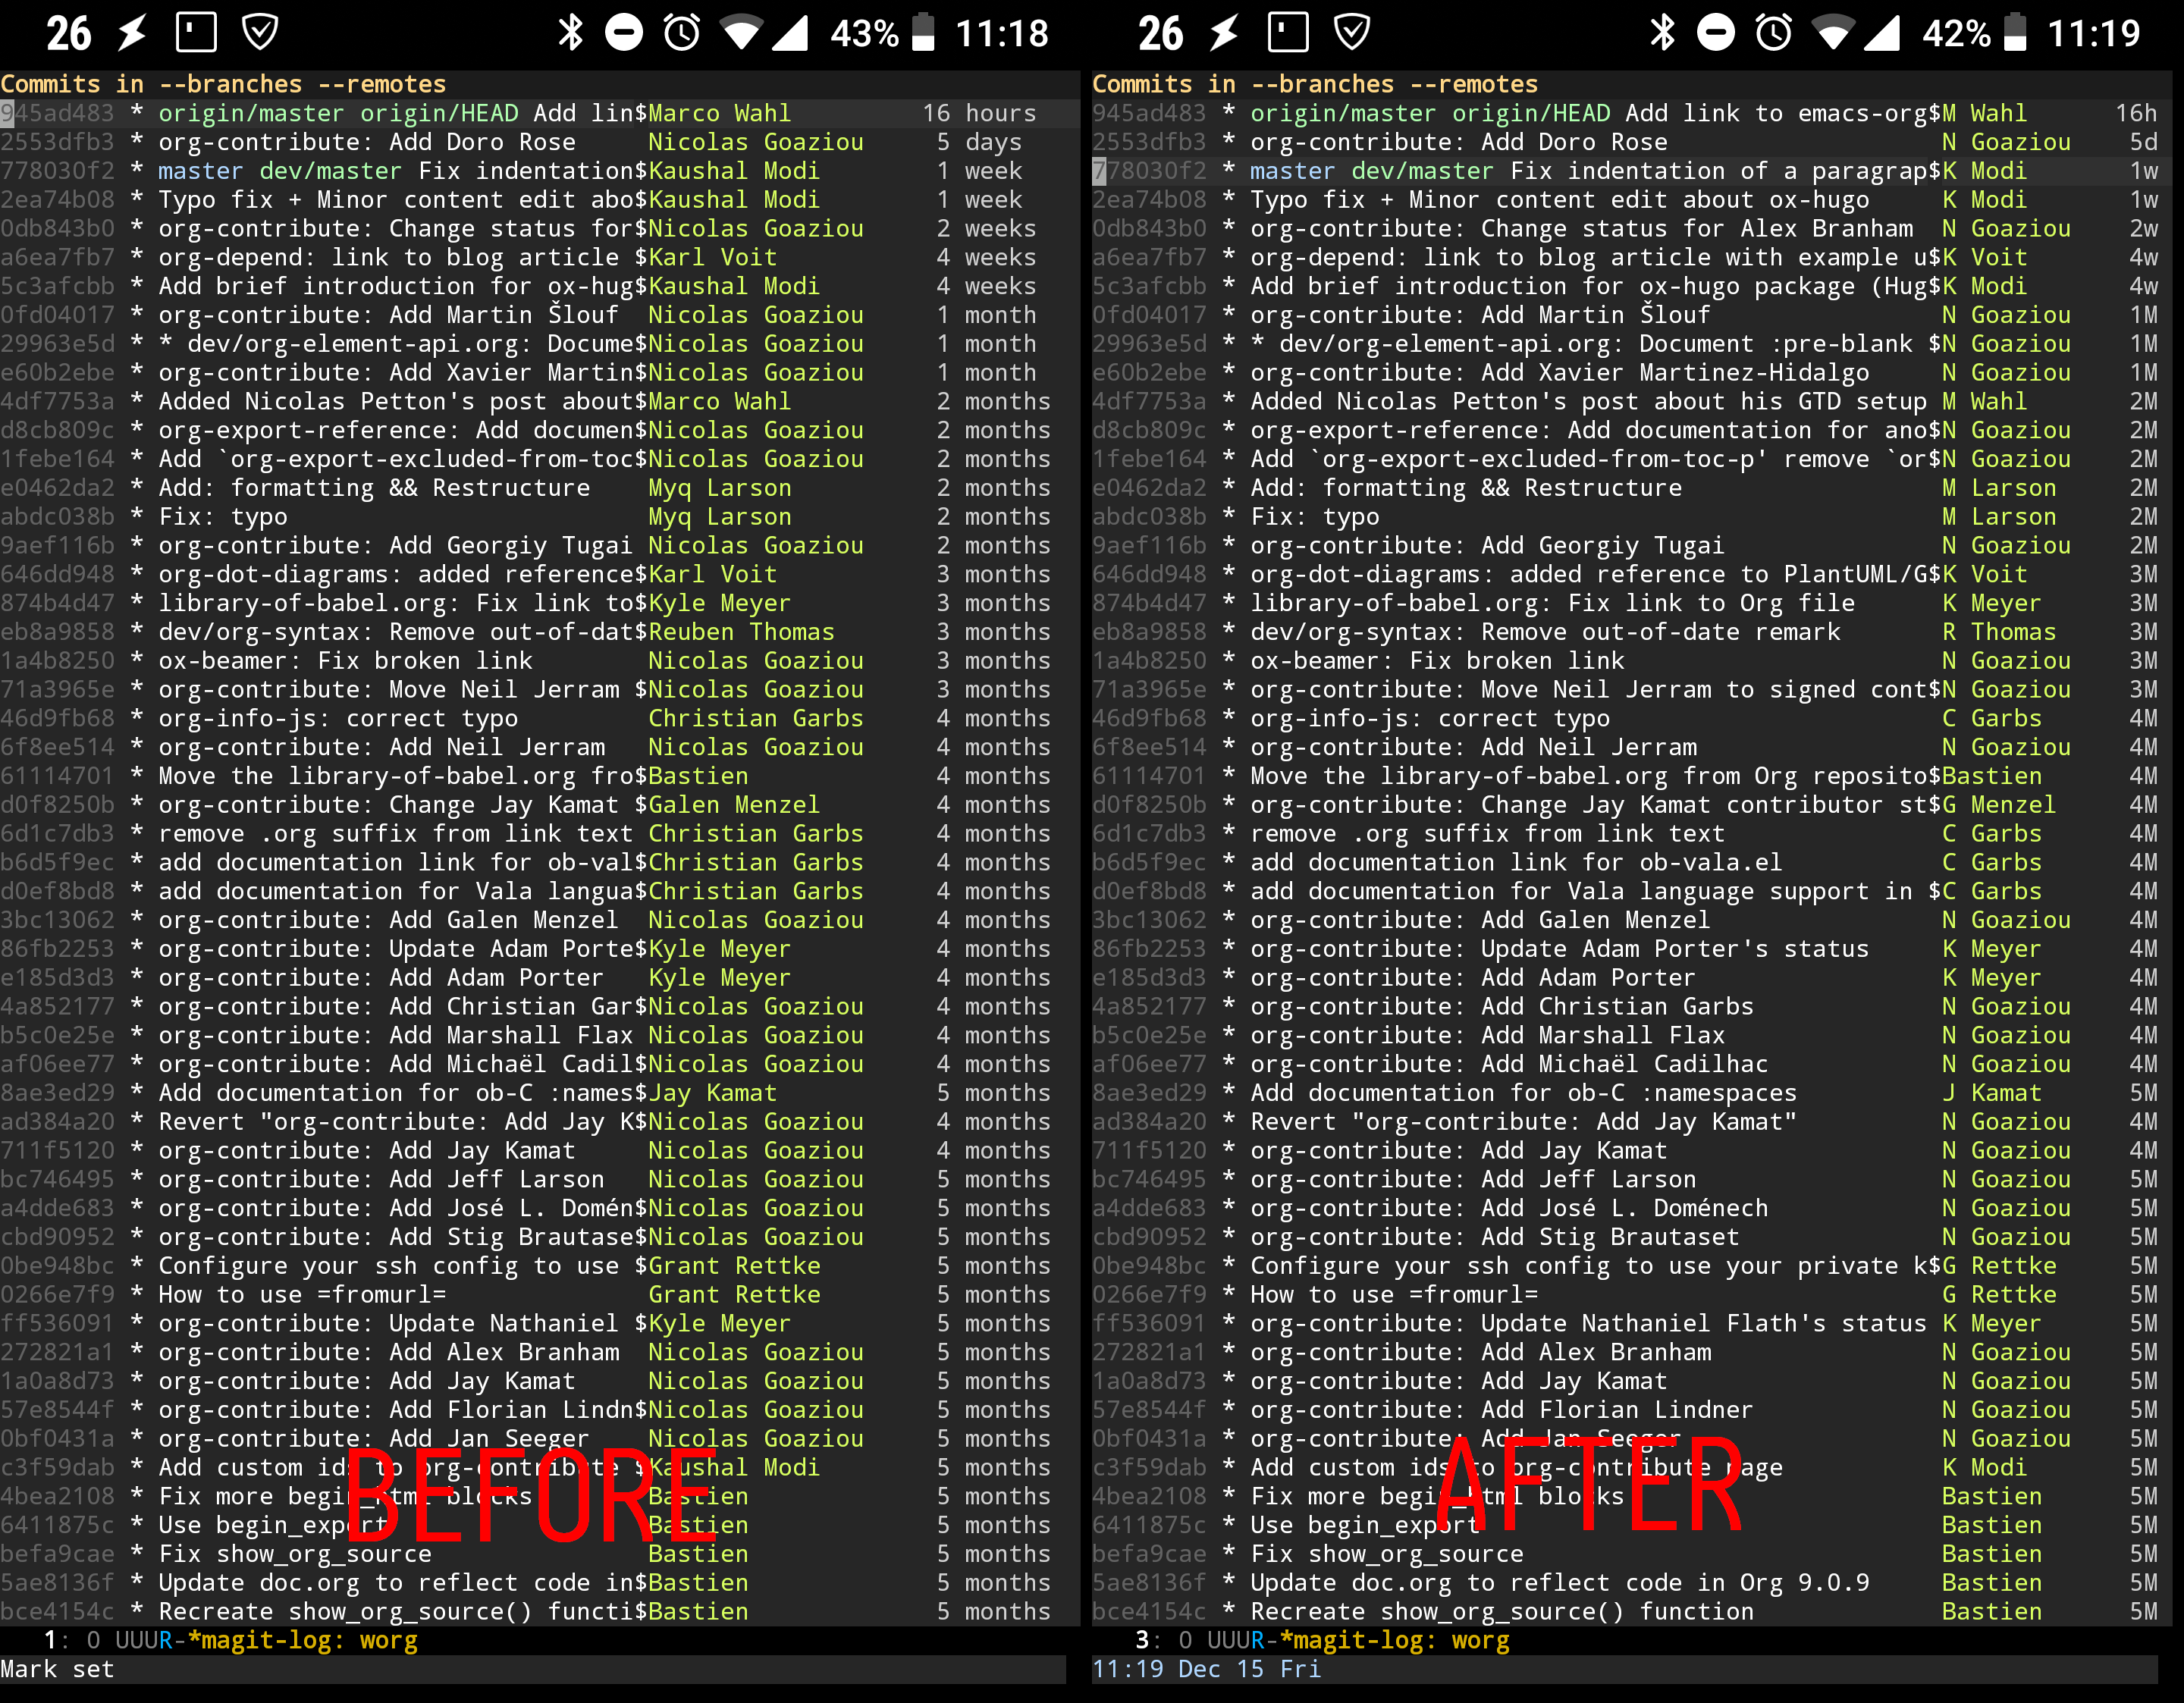 Org-mode Worg commit log : Before (Left), After (Right)